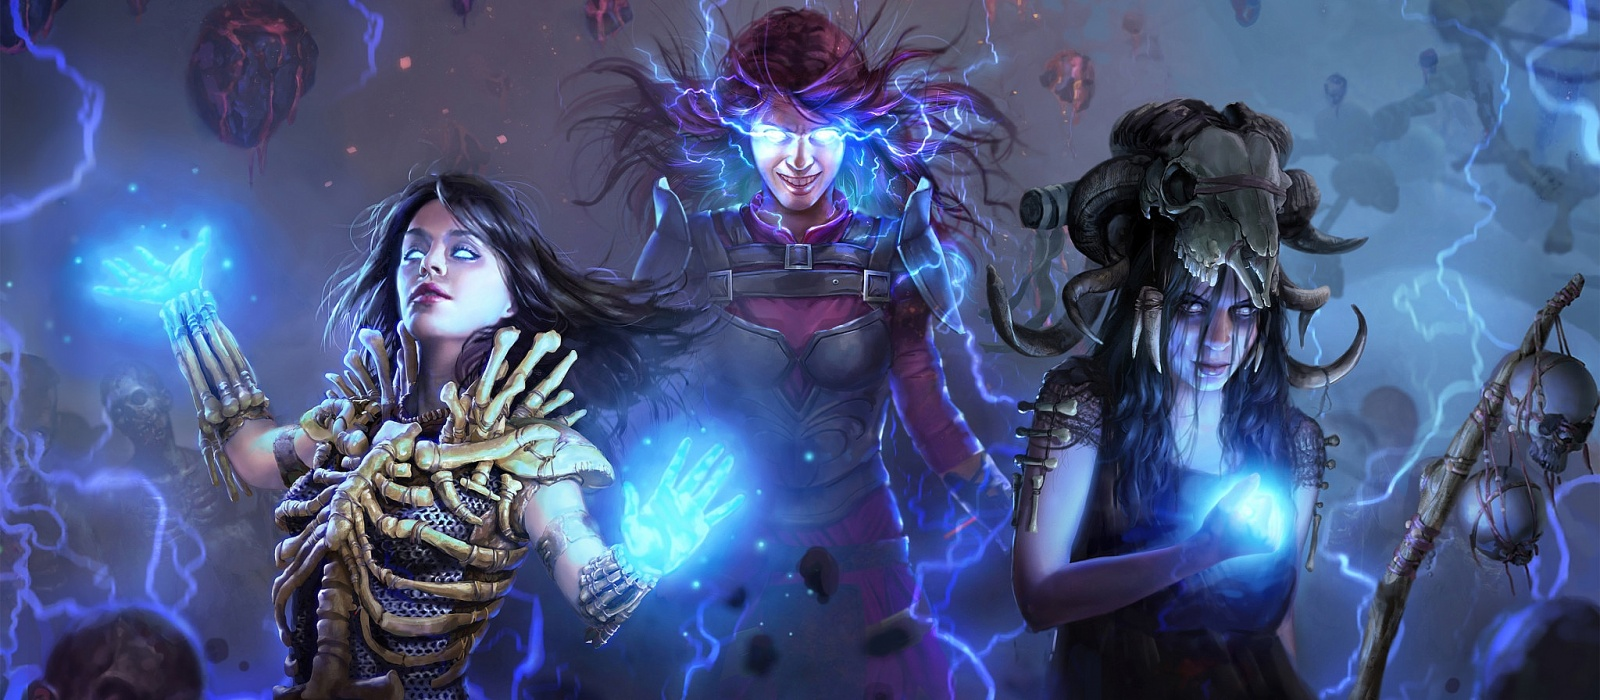 A new 2021 league in Path of Exile. Echoes of the Atlas Ritual League Guide